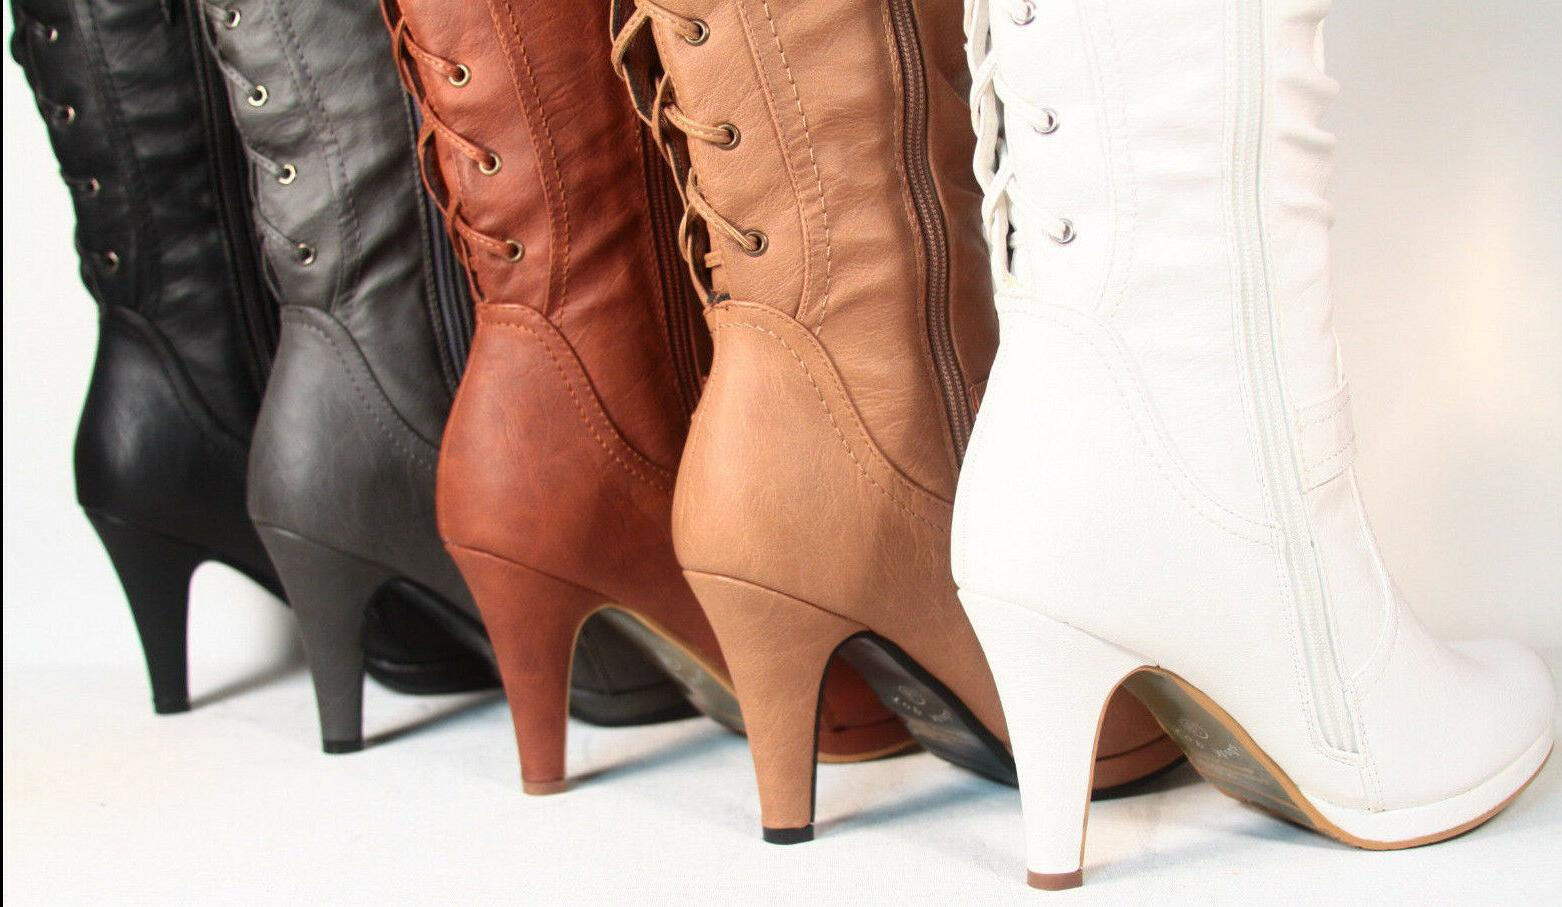 Women's Sexy Lace Up Low Platform Heel Knee High Boots Shoes